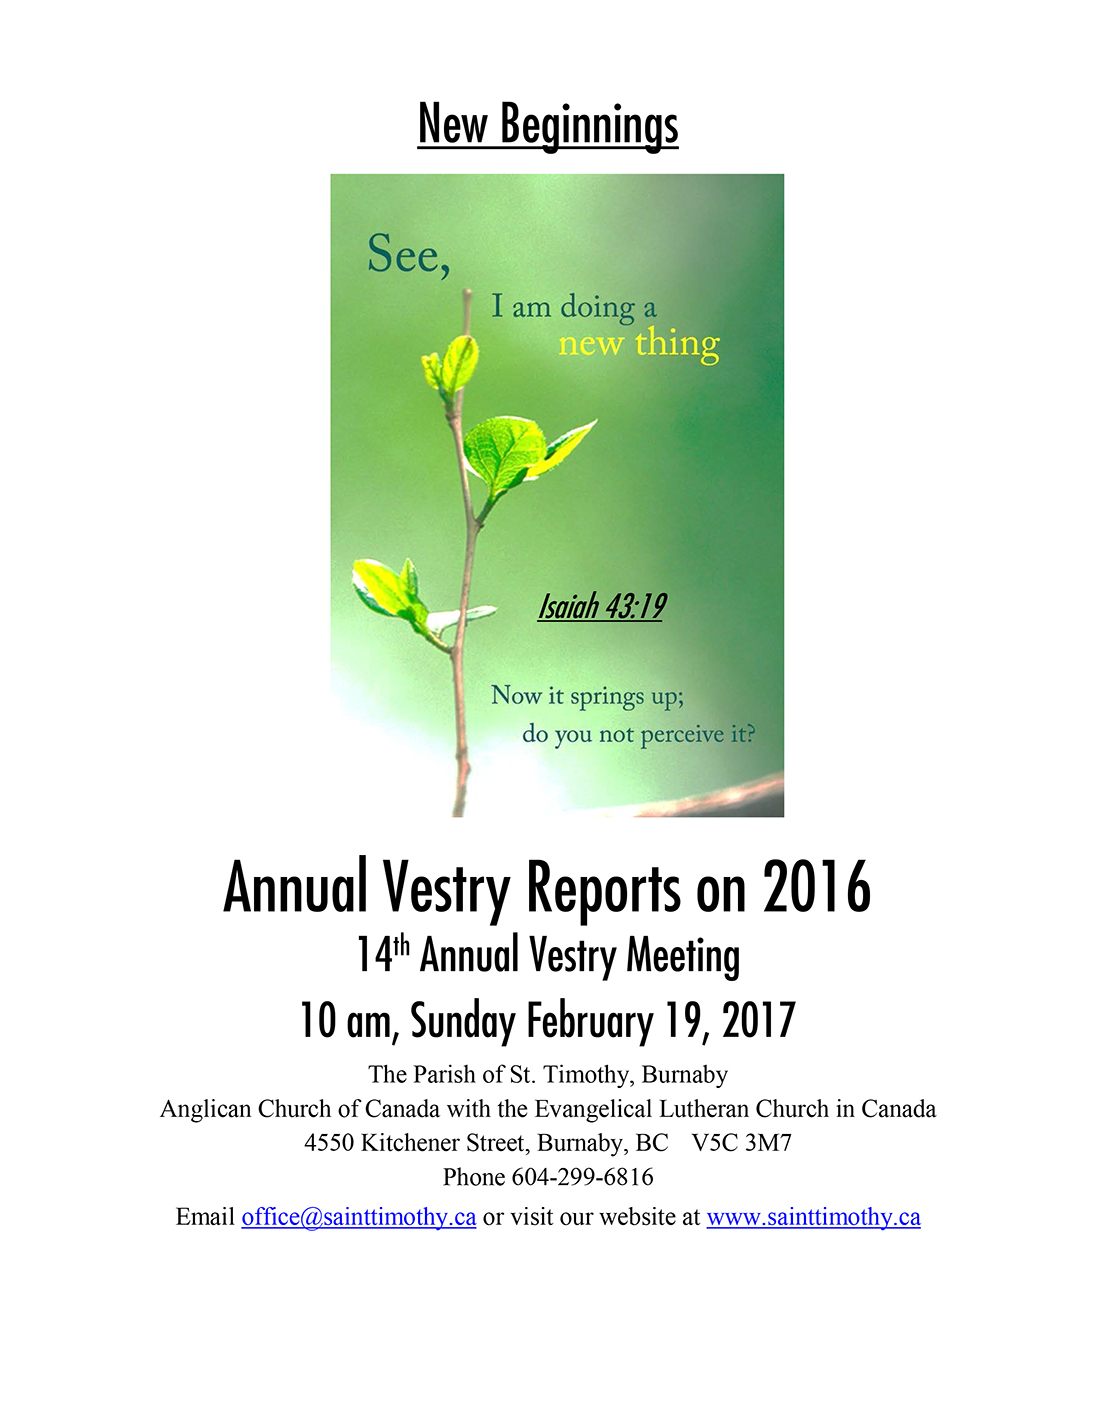 Vestry Reports on 2016